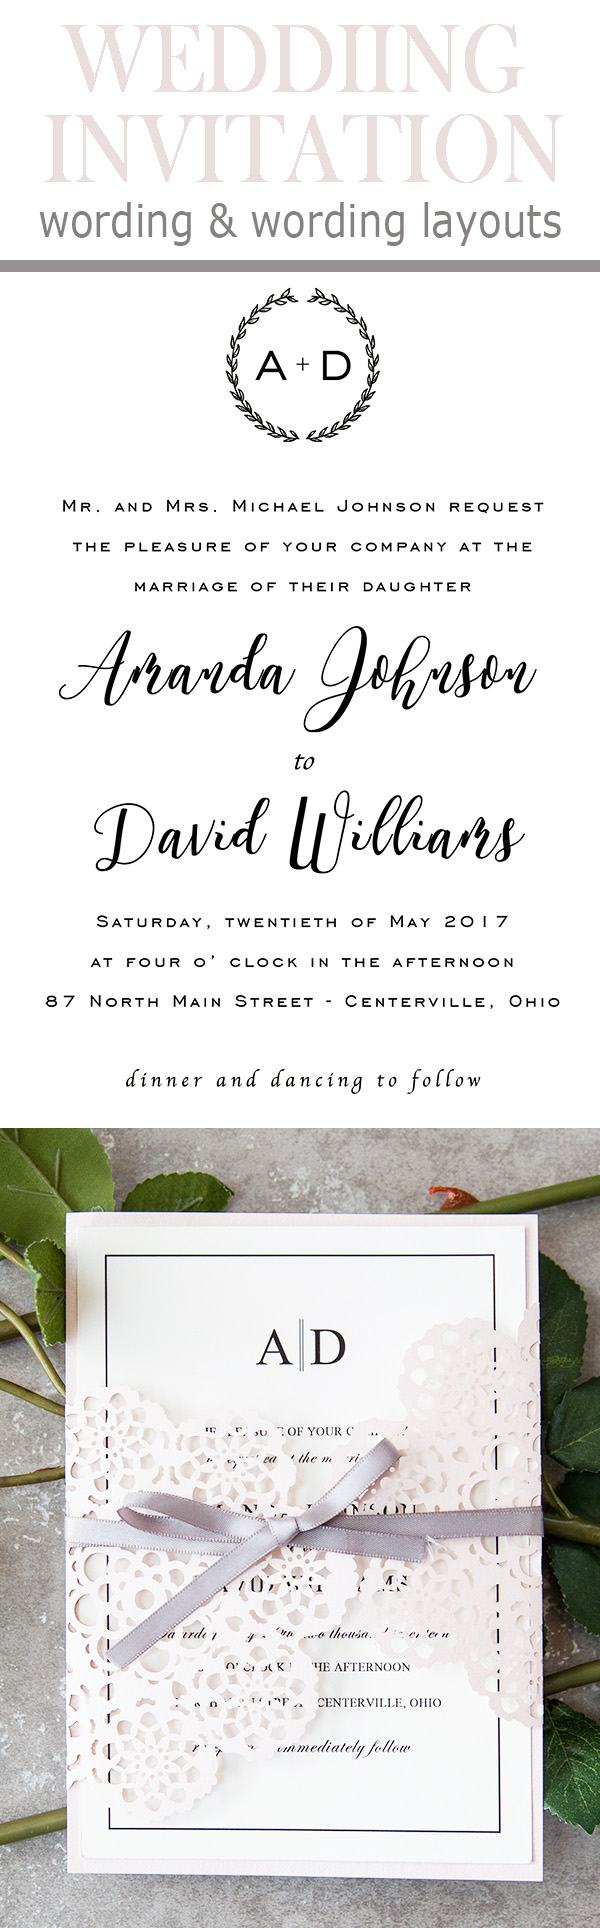 invitation word template